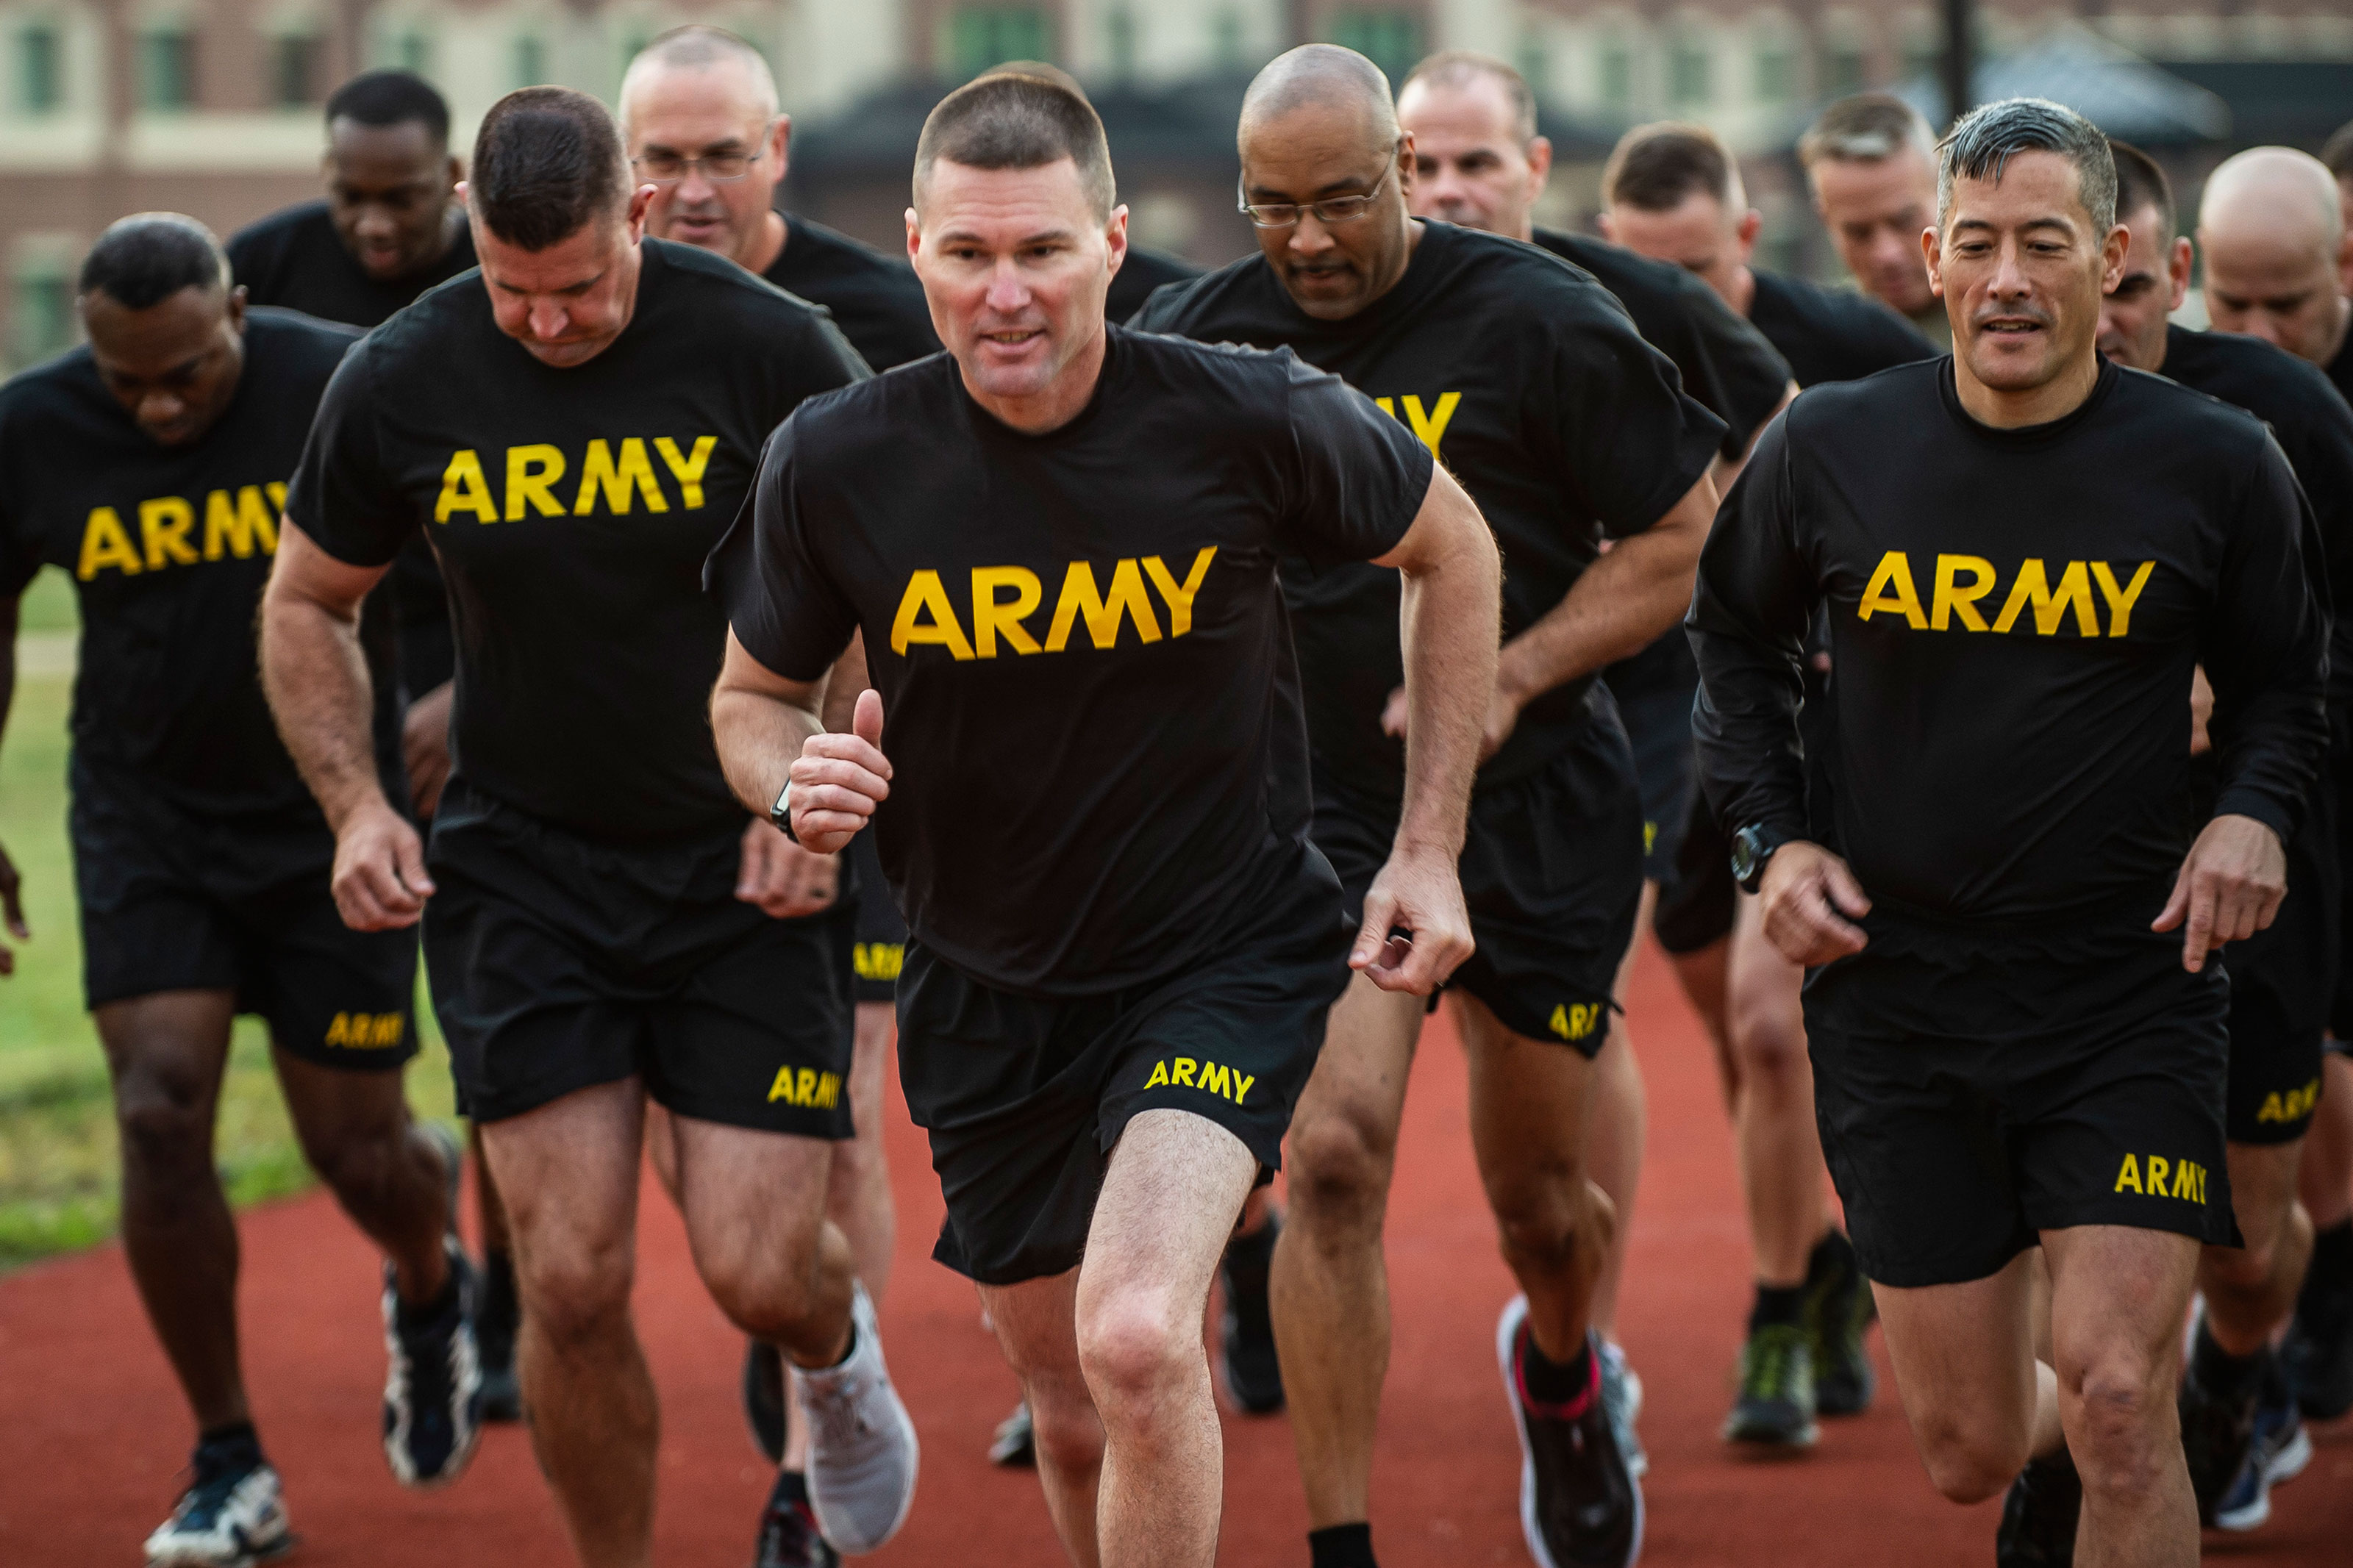 Prepping for the ACFT? The Two-Mile Run